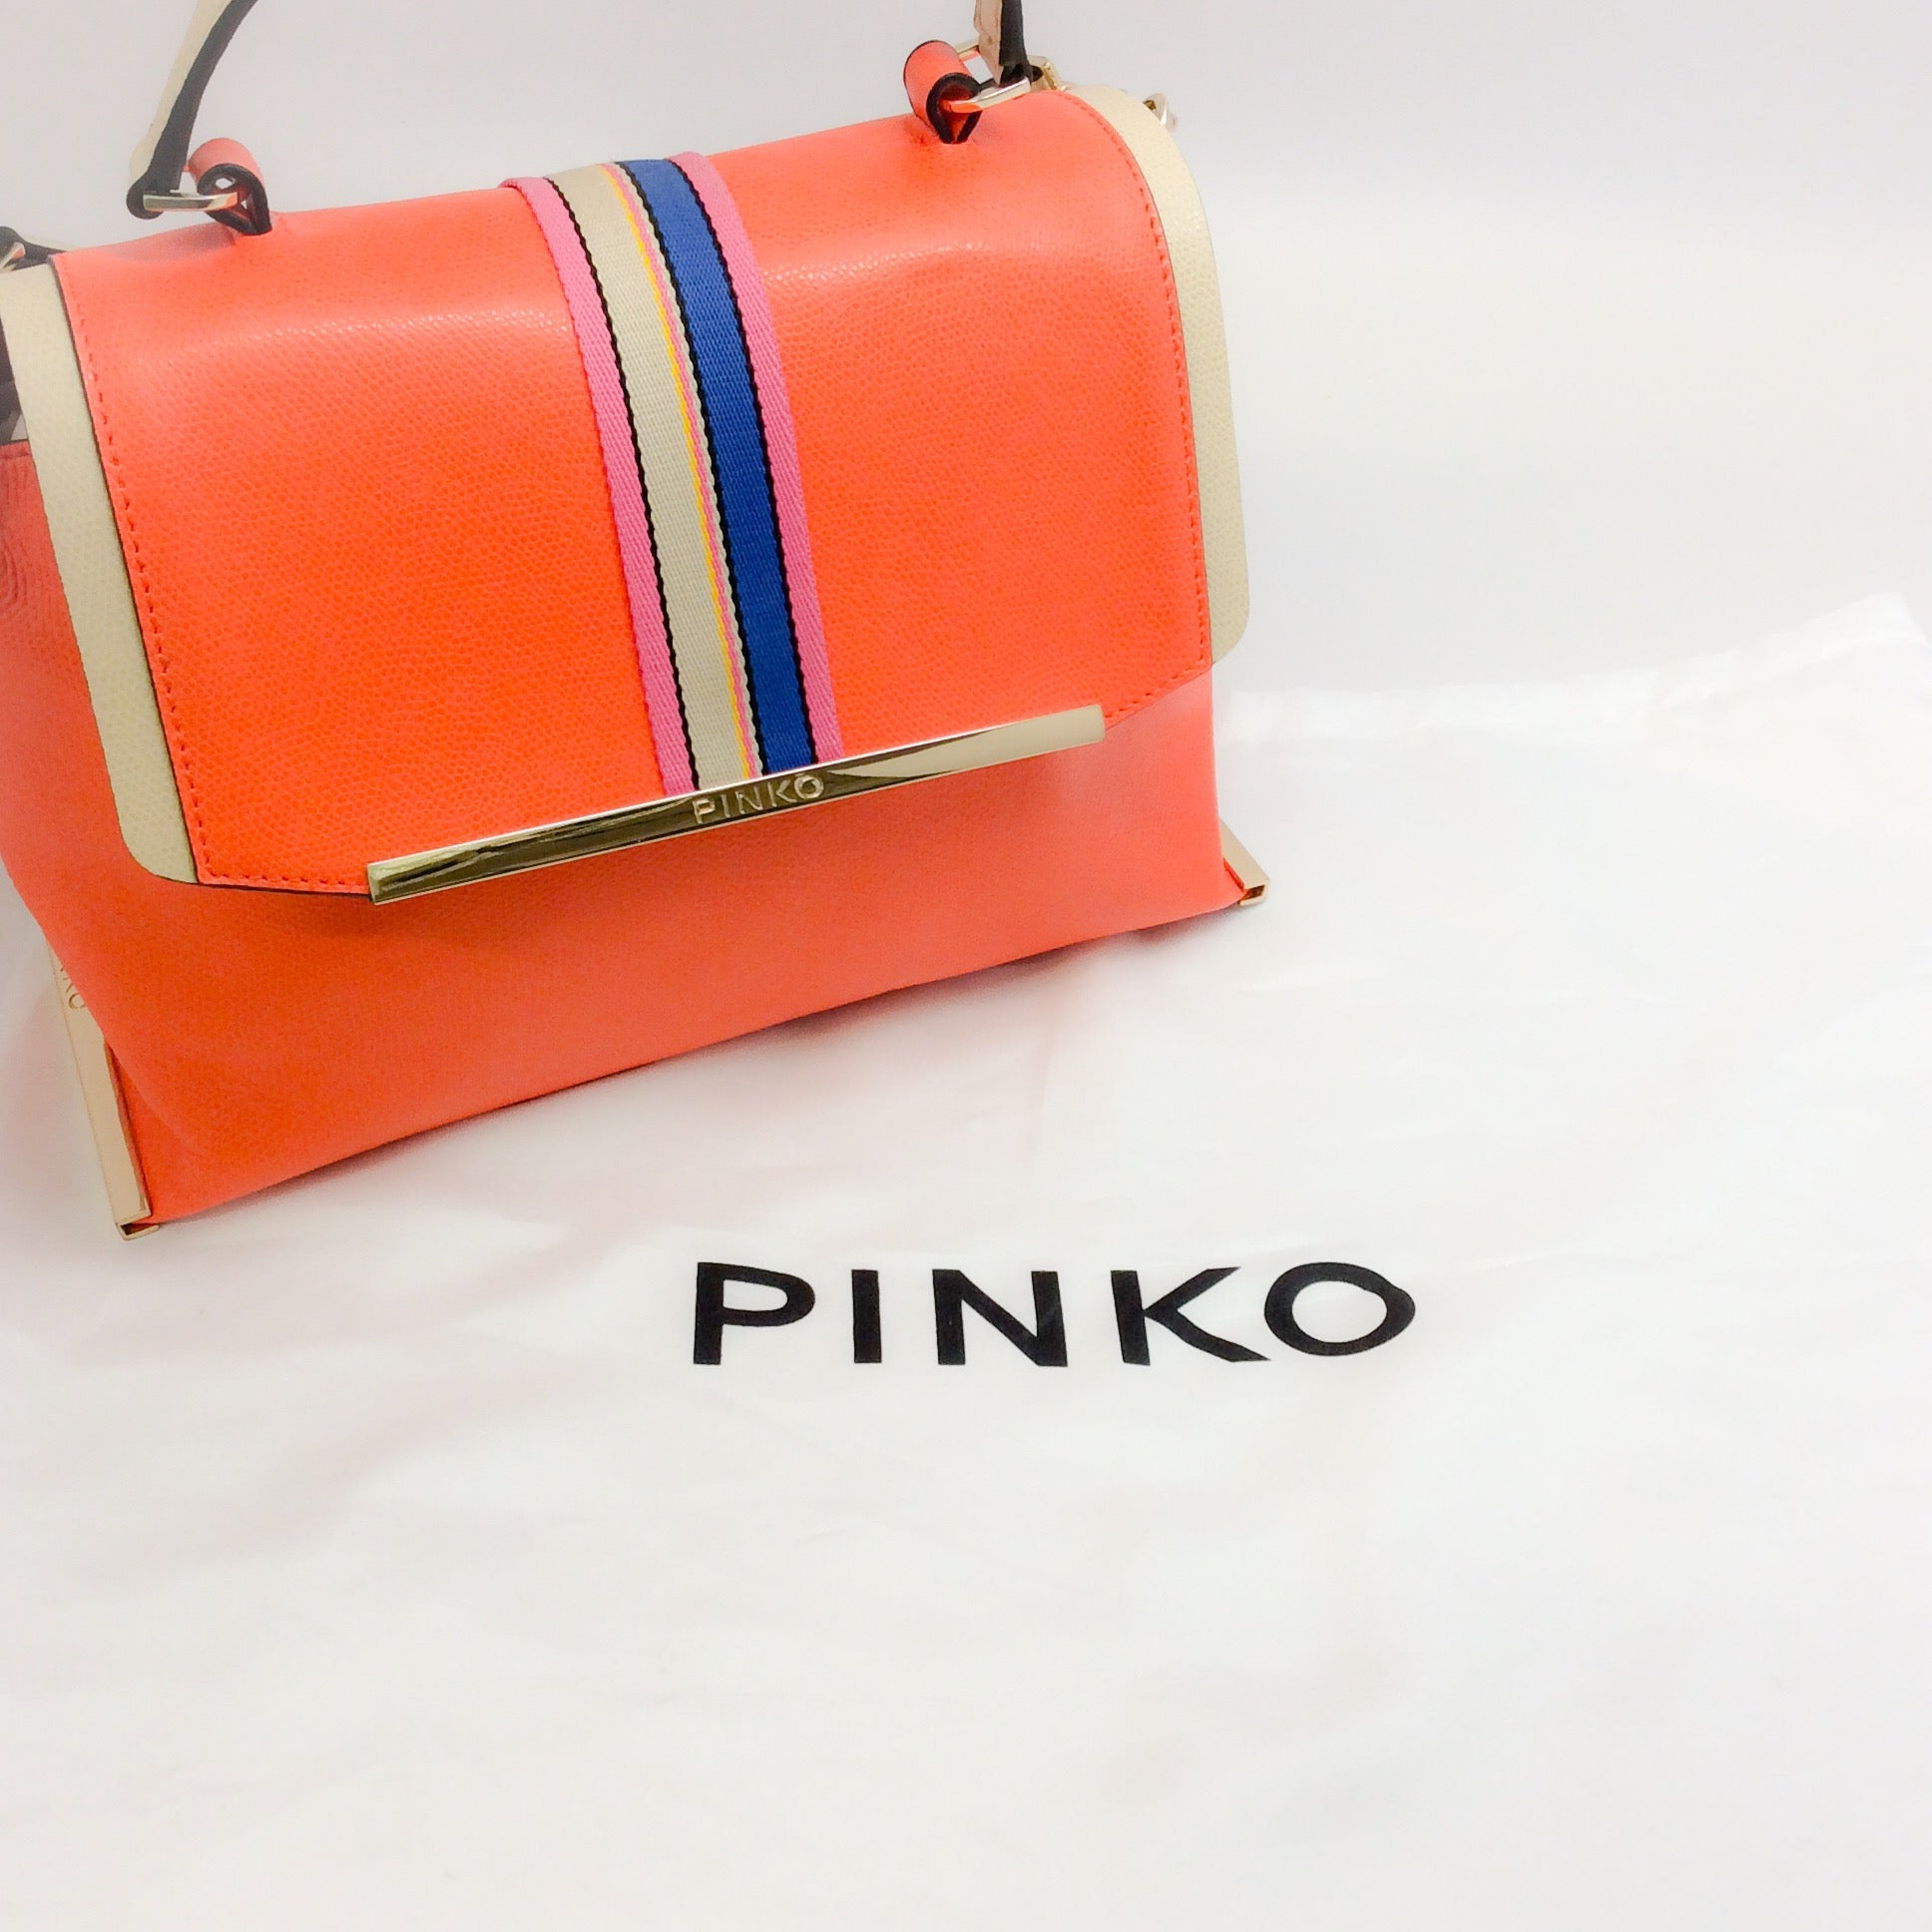 Pinko Front Ribbon Detail Orange Leather Satchel